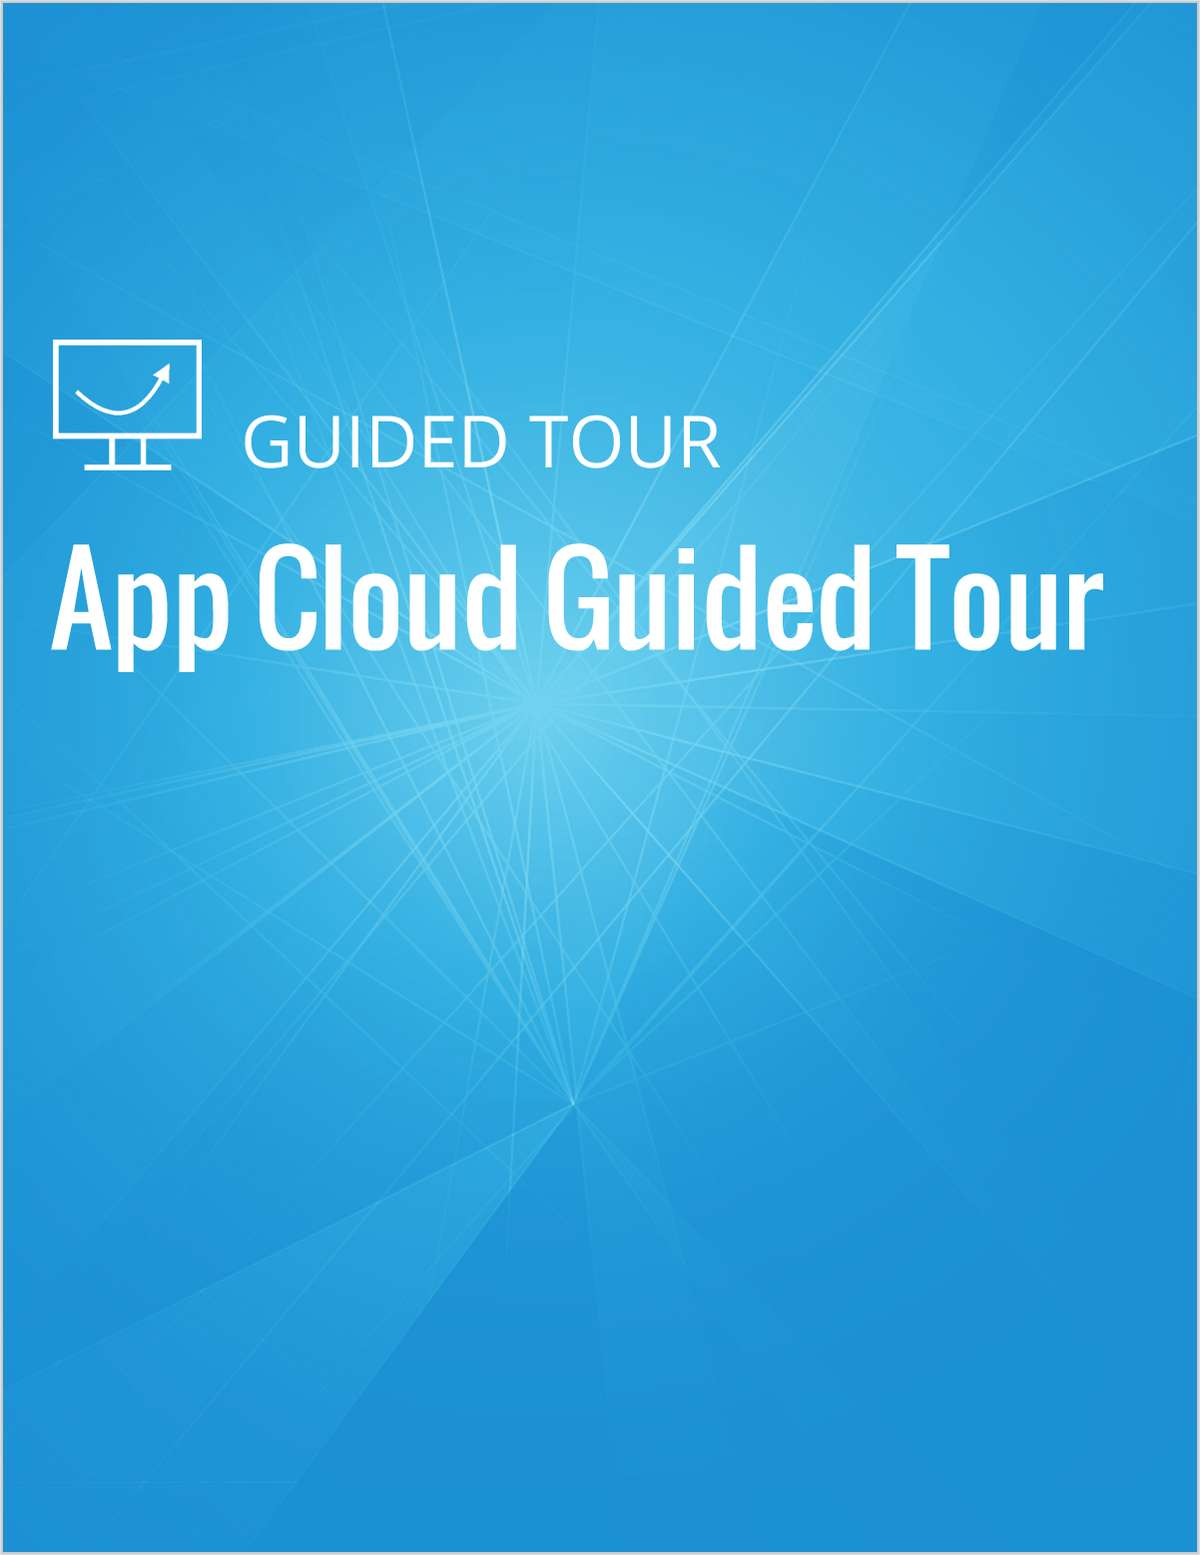 App Cloud Guided Tour